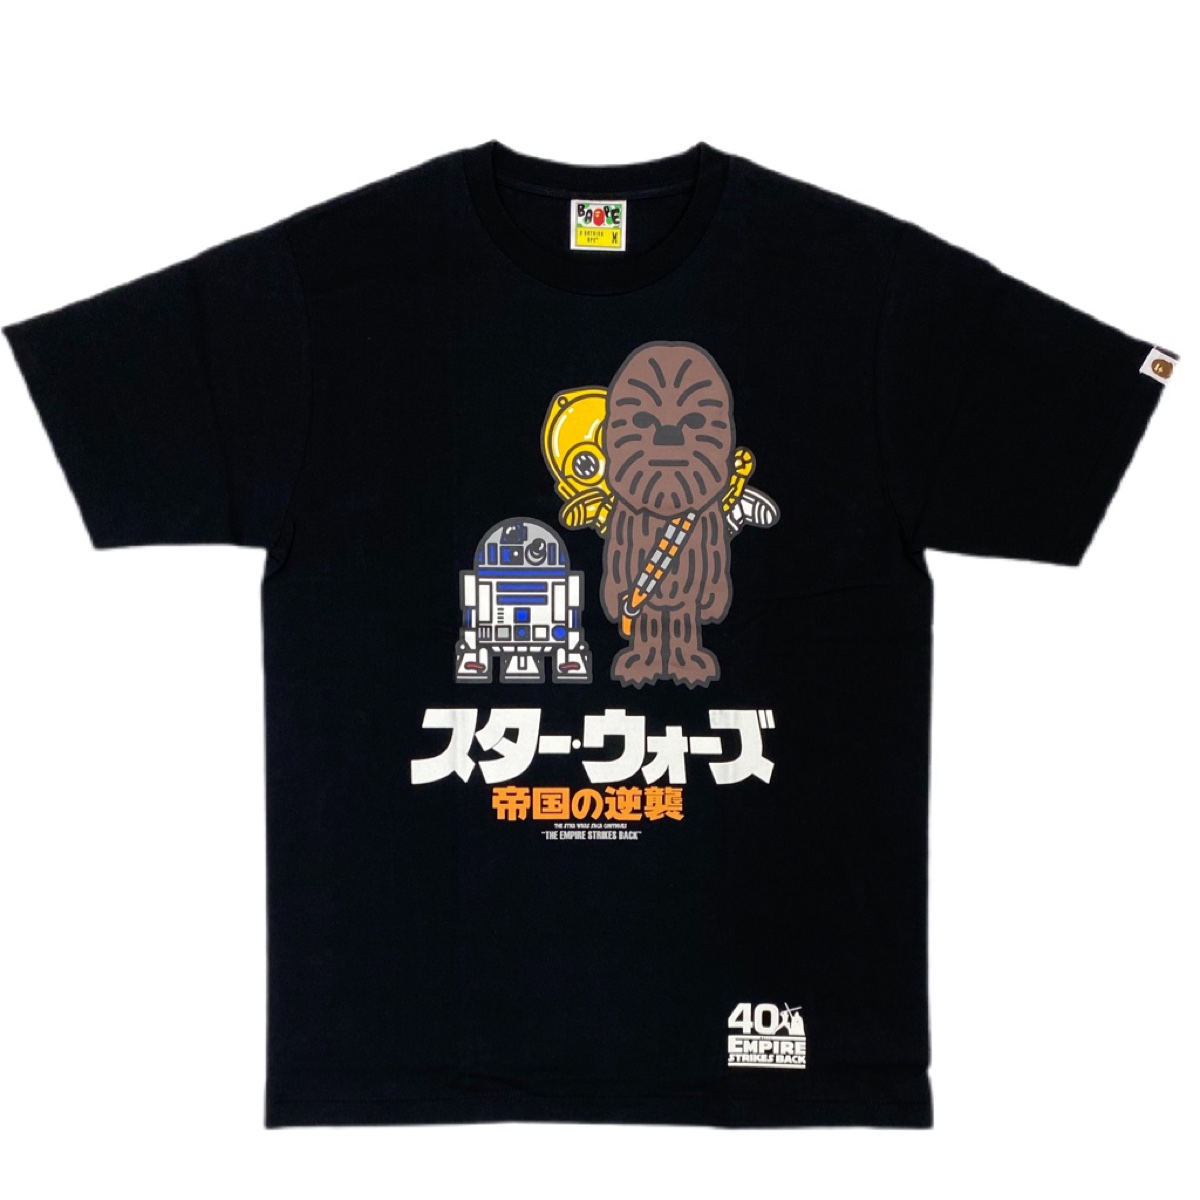 Authentic Bape x Star Wars Chewbacca black tee brand new